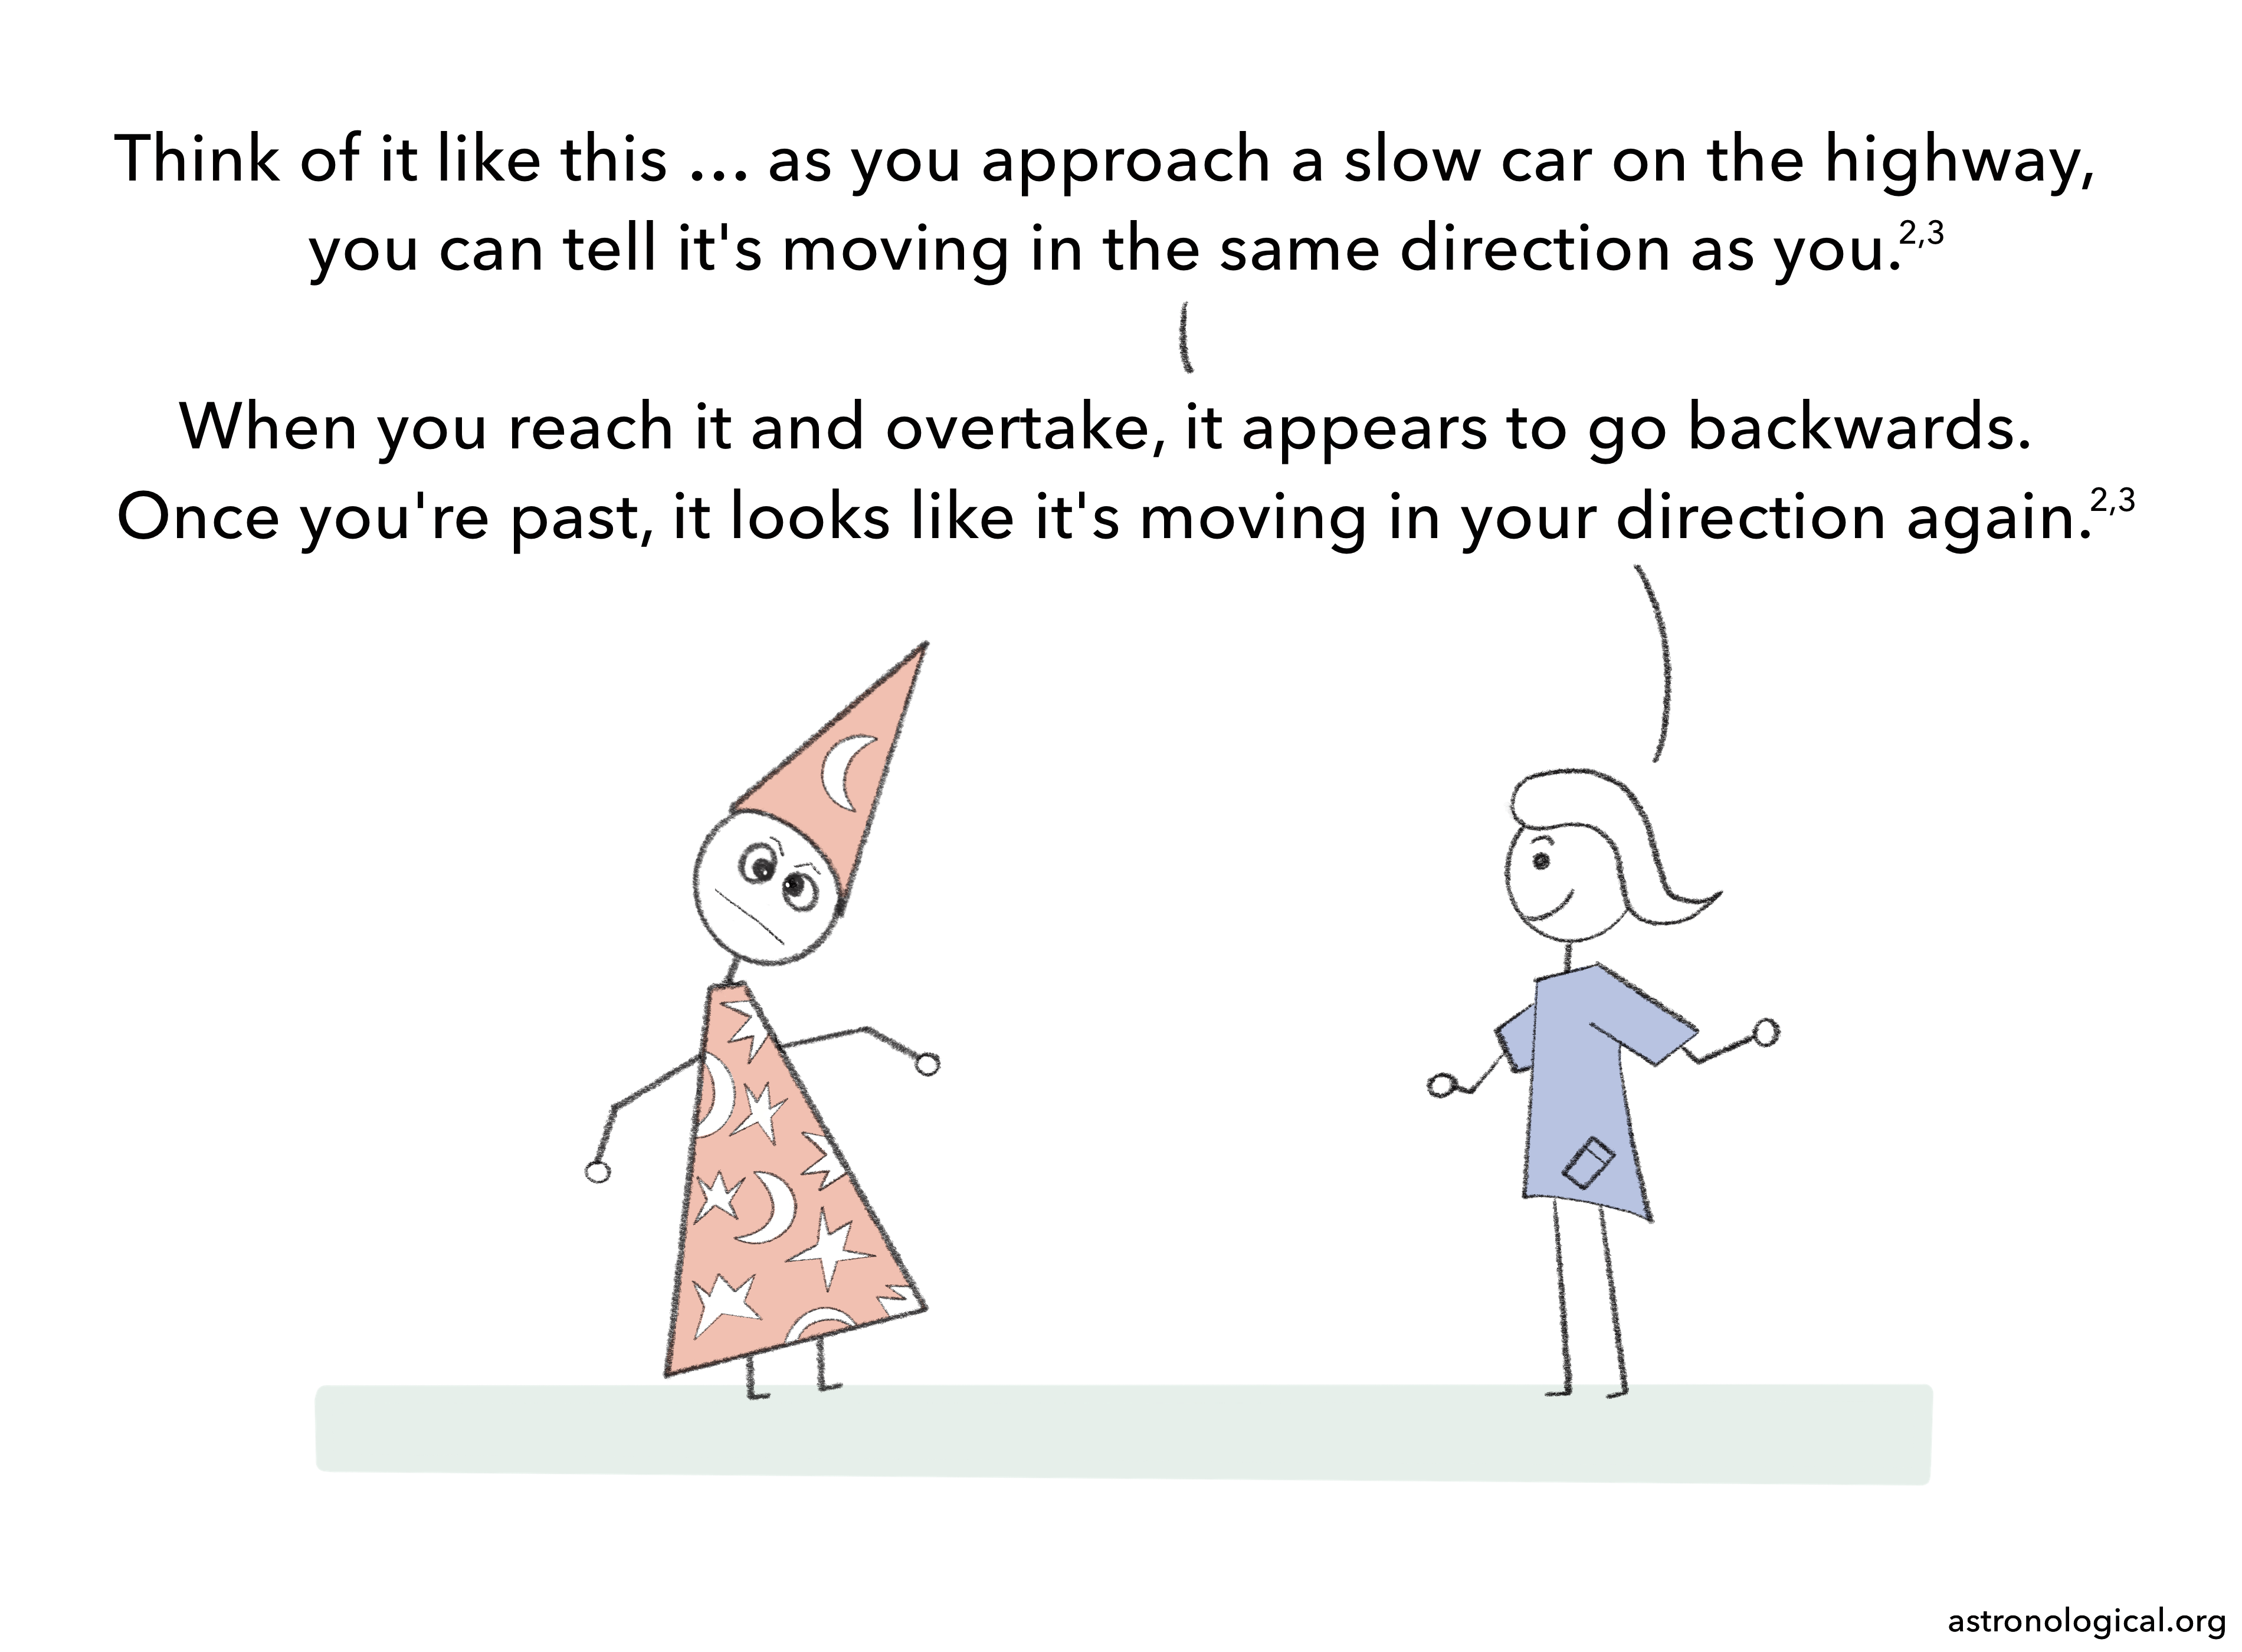 The astrologer looks impatient and confused. The scientist continues: Think of it like this. As you approach a slow car on the highway, you can tell it's moving in the same direction as you. When you reach it and overtake, it appears to go backwards. Once you're past, it looks like it's moving in your direction again.